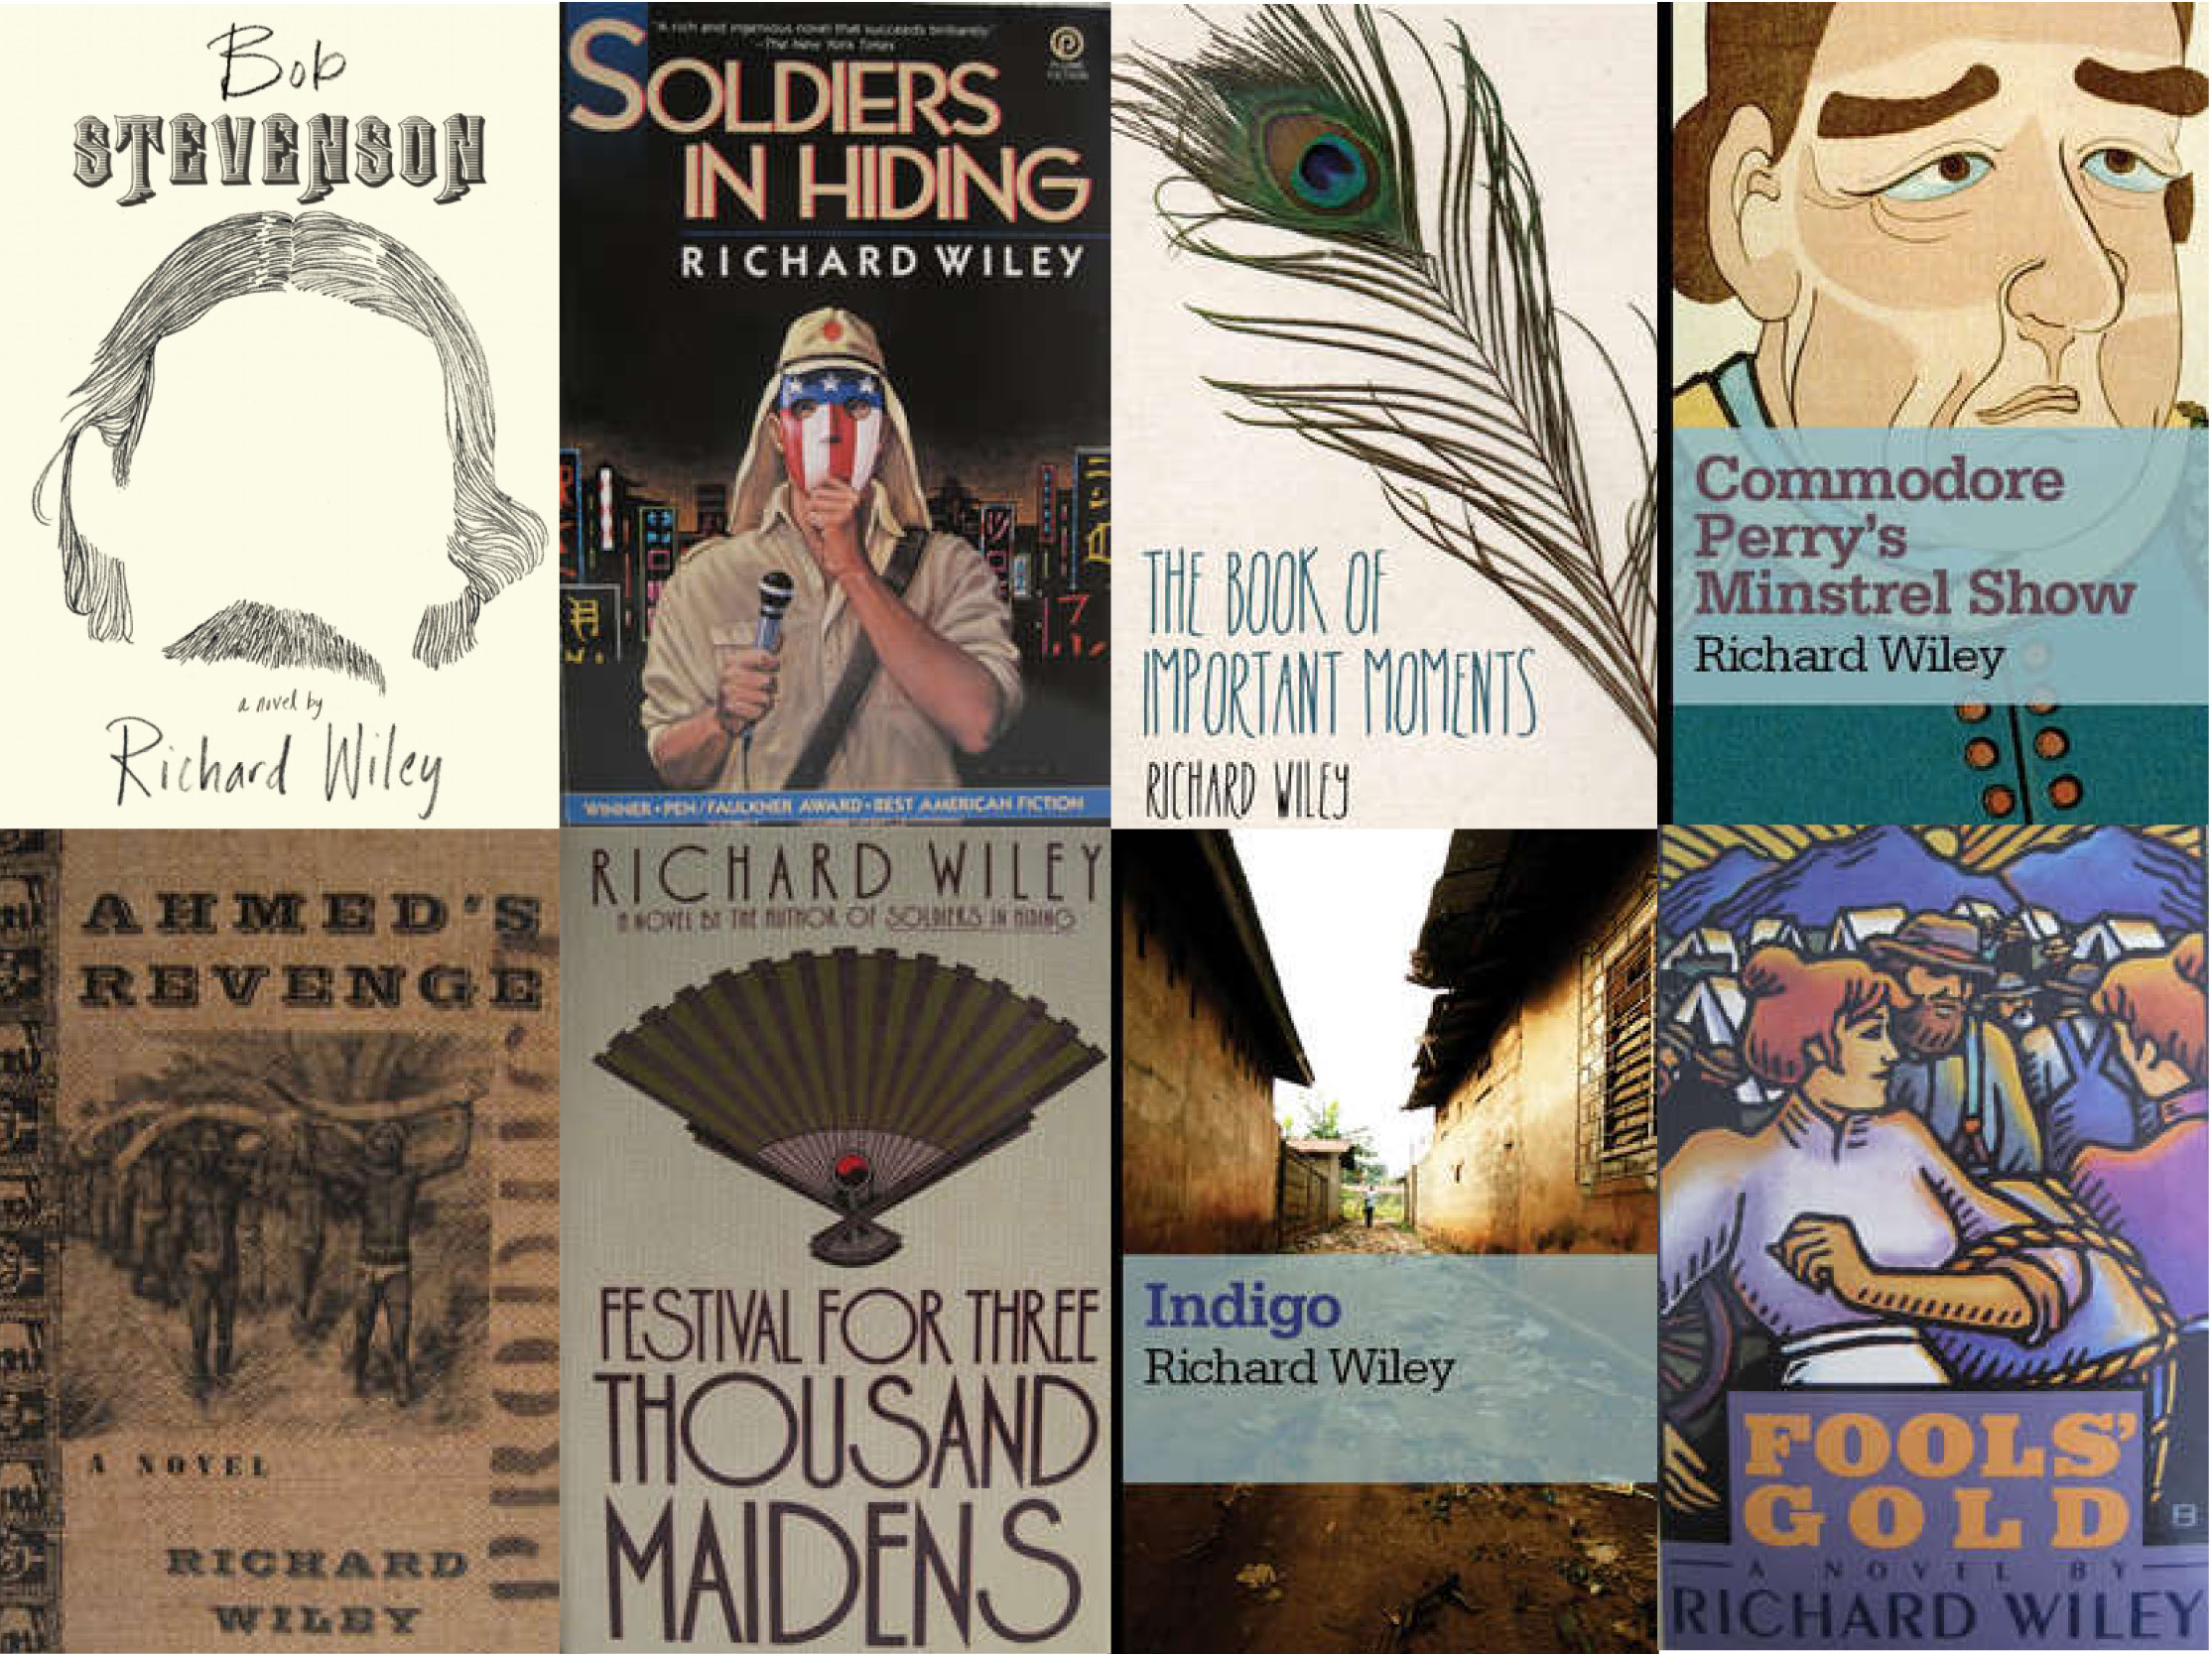 Books by Richard Wiley